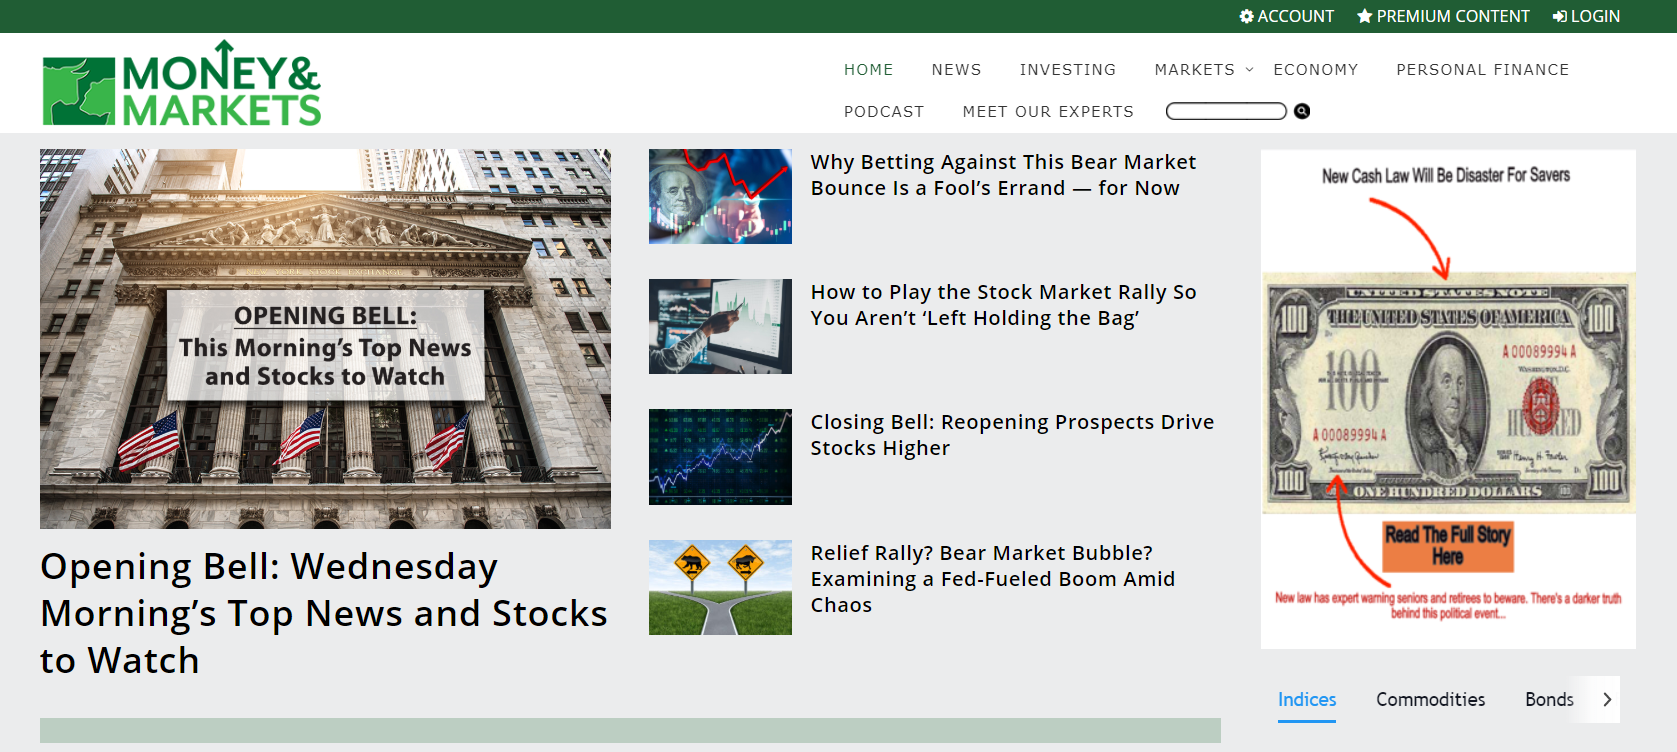 Money & Markets website